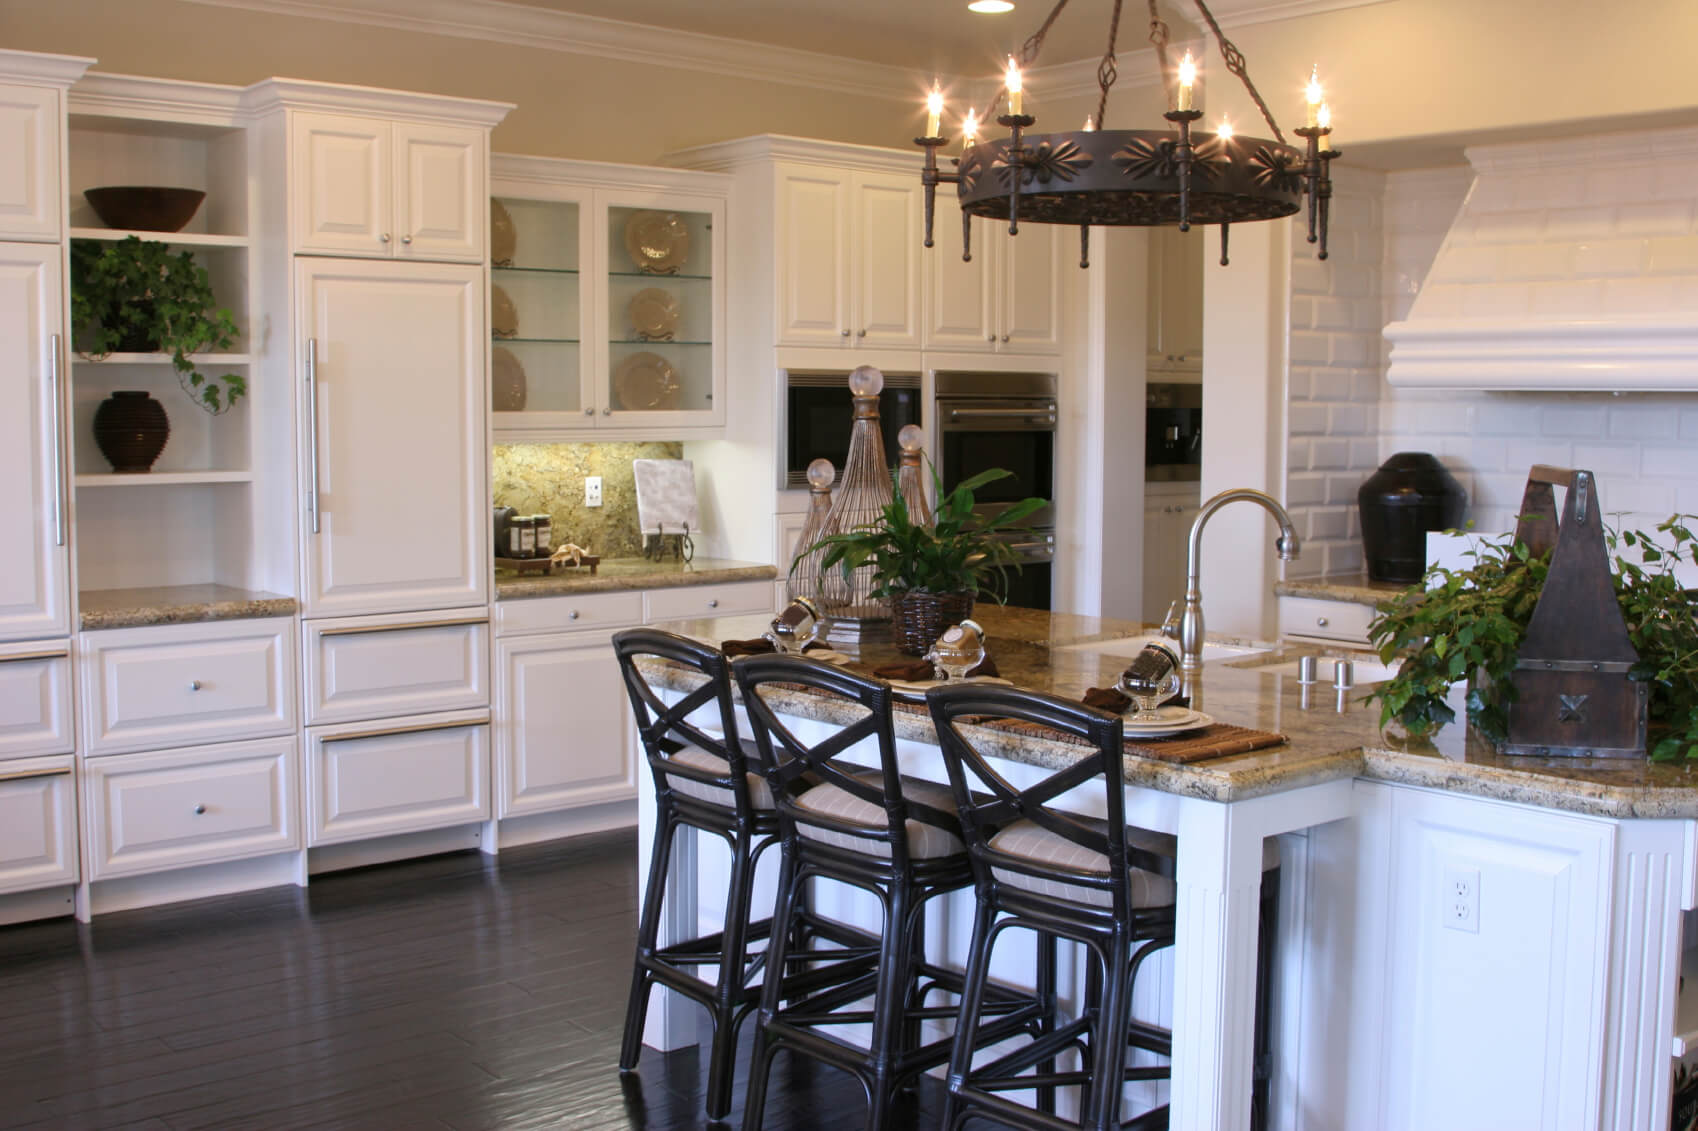 Kitchen Floor Ideas With Dark Cabinets 41 White Kitchen Interior Design And Decor Ideas Pictures